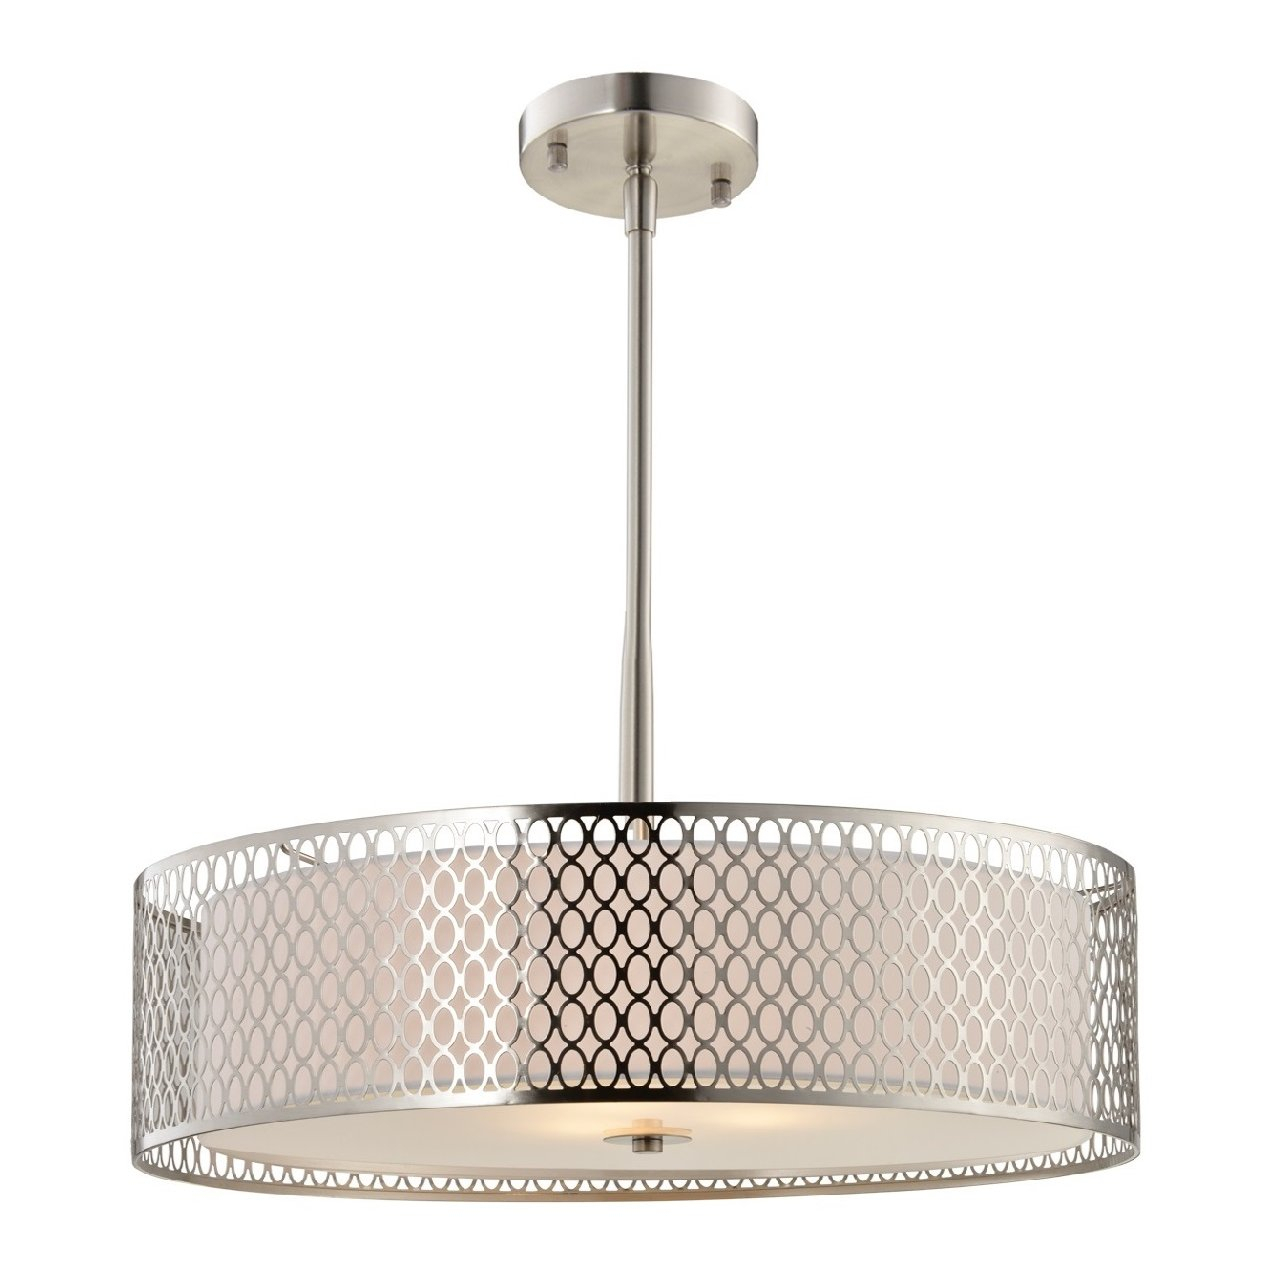 Ferrigno 3-Light Drum Chandelier with regard to Montes 3-Light Drum Chandeliers (Image 8 of 30)